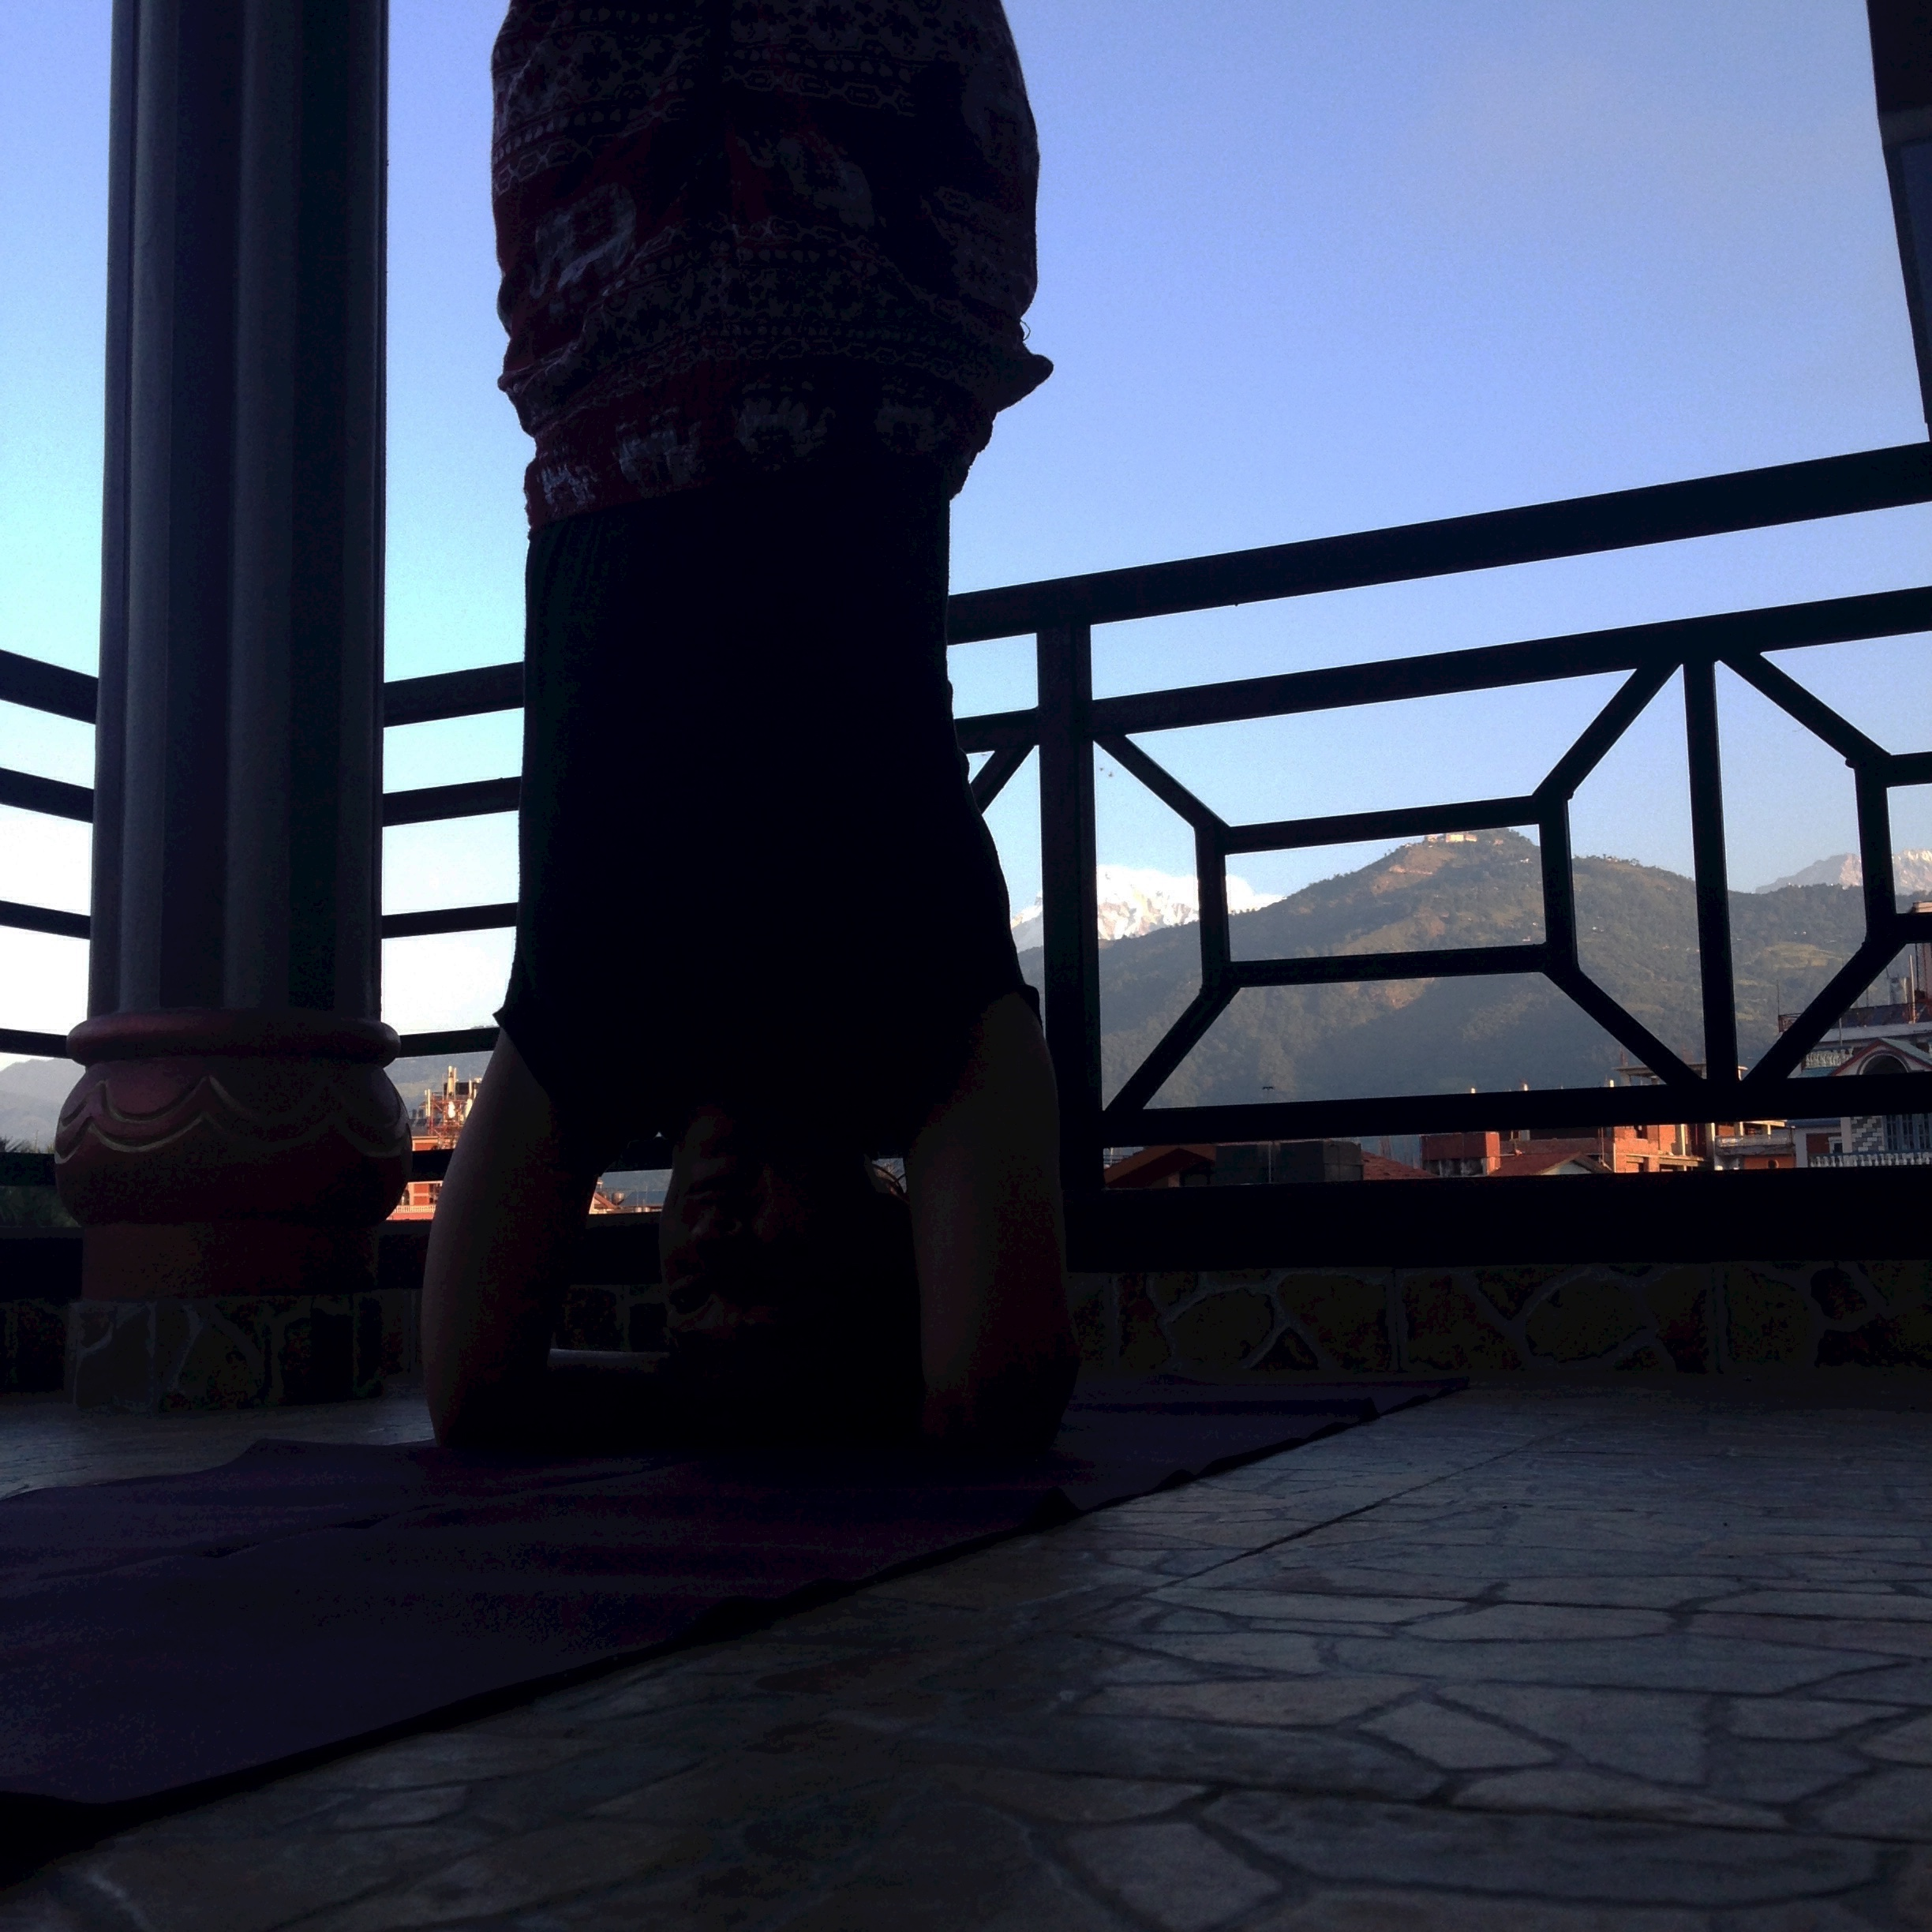 My Yoga Practice in Pokhara, Nepal.